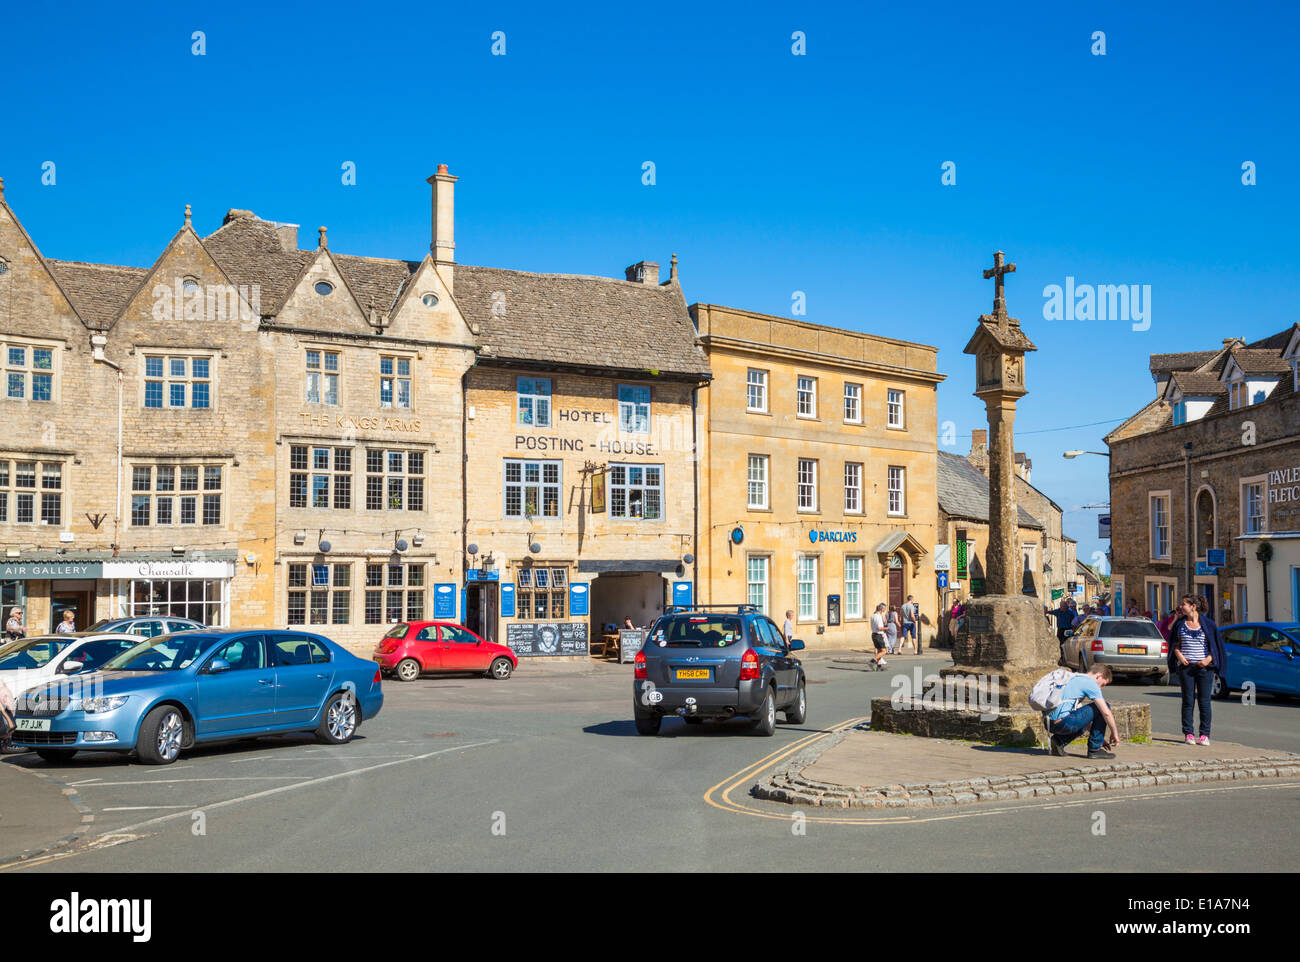 Market Square, Stow on the Wold, Cotswolds, Gloucesterstershire, England, UK, EU, Europe Stock Photo